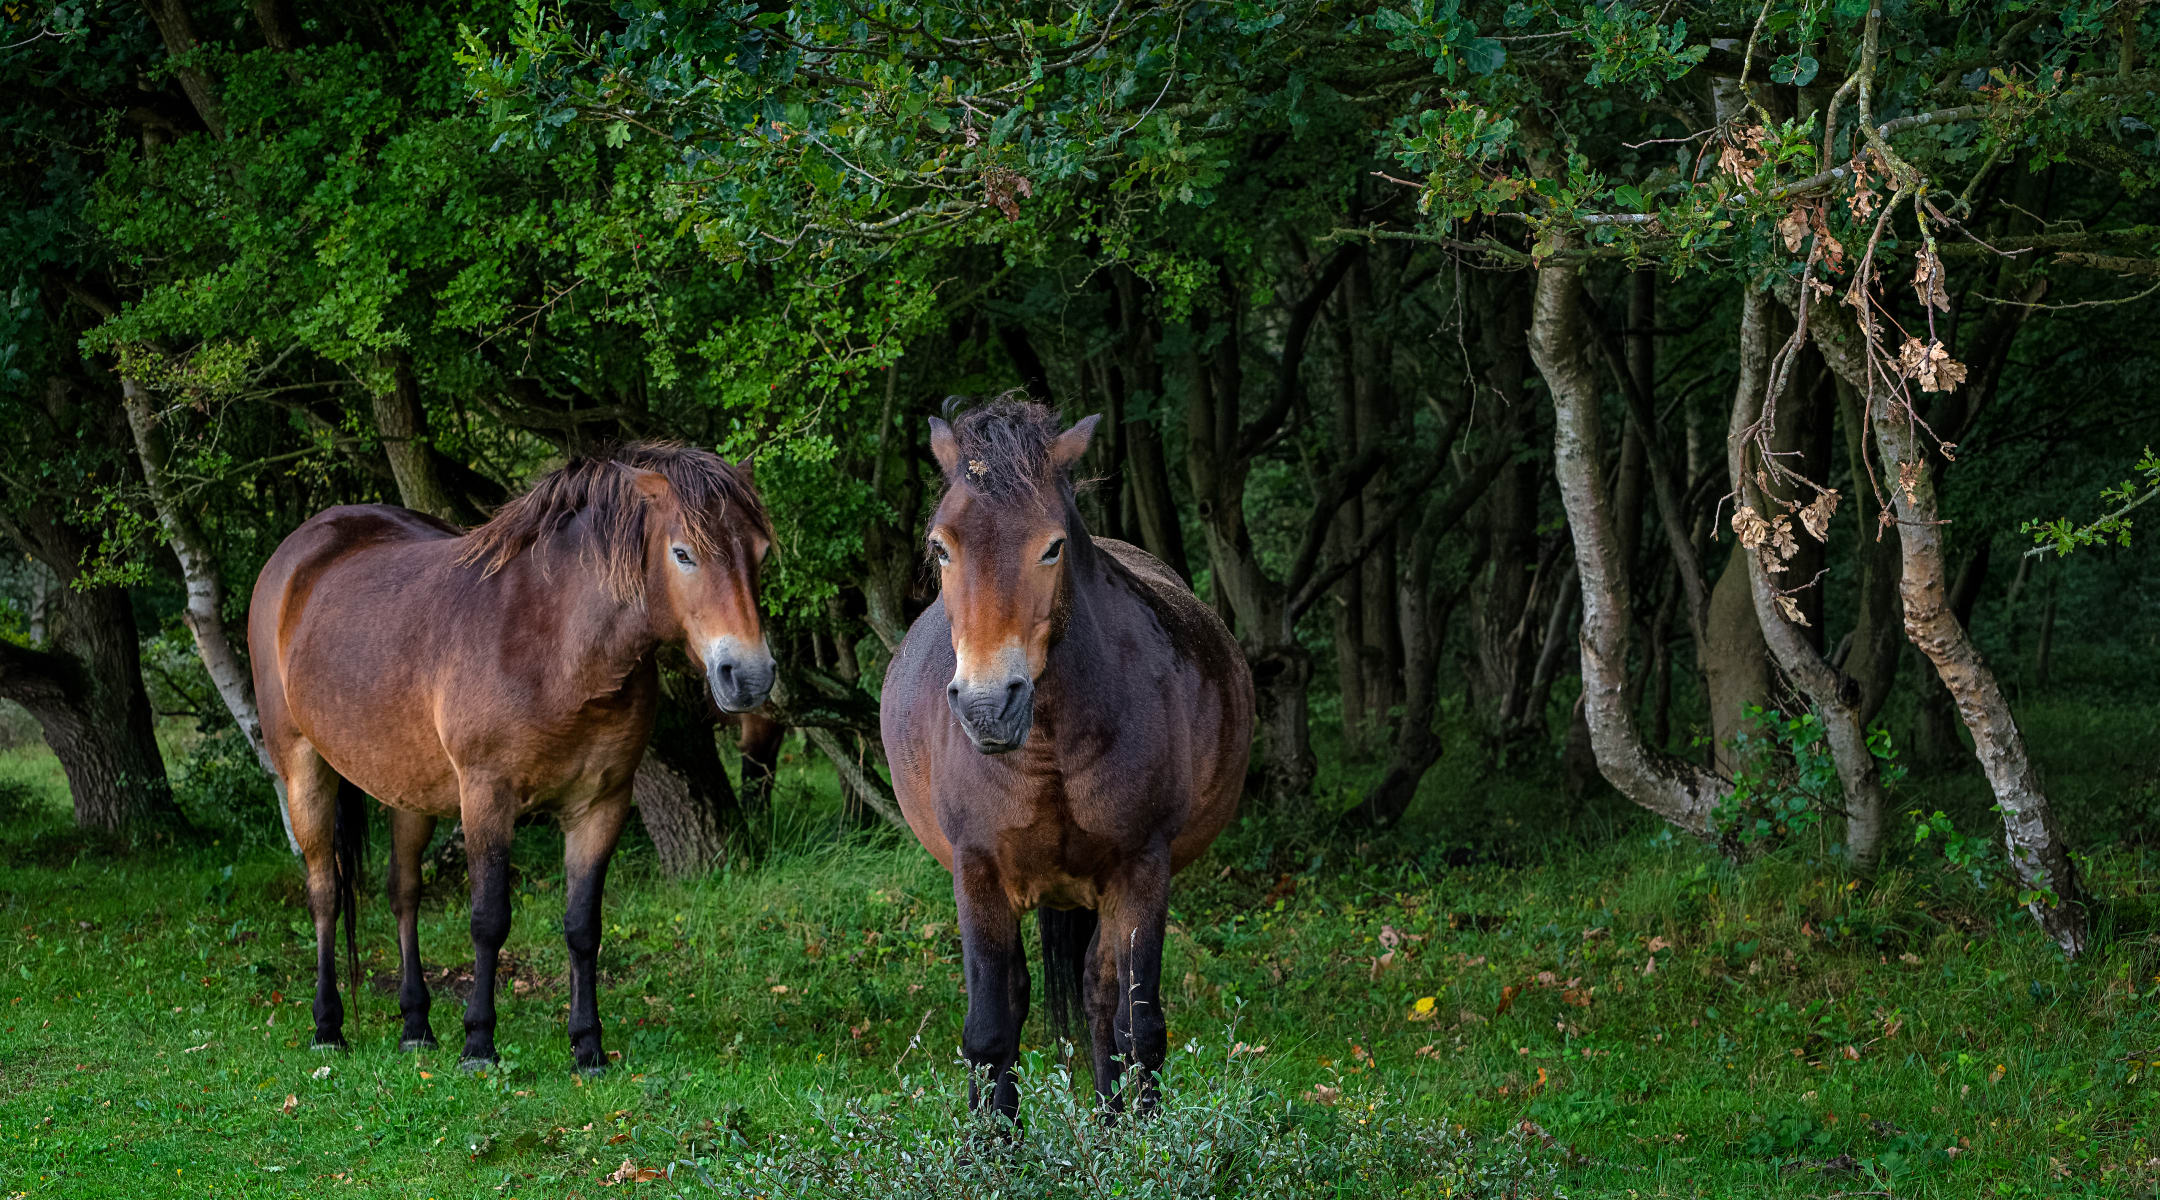 Two Horses Standing at the Edge of a Forest